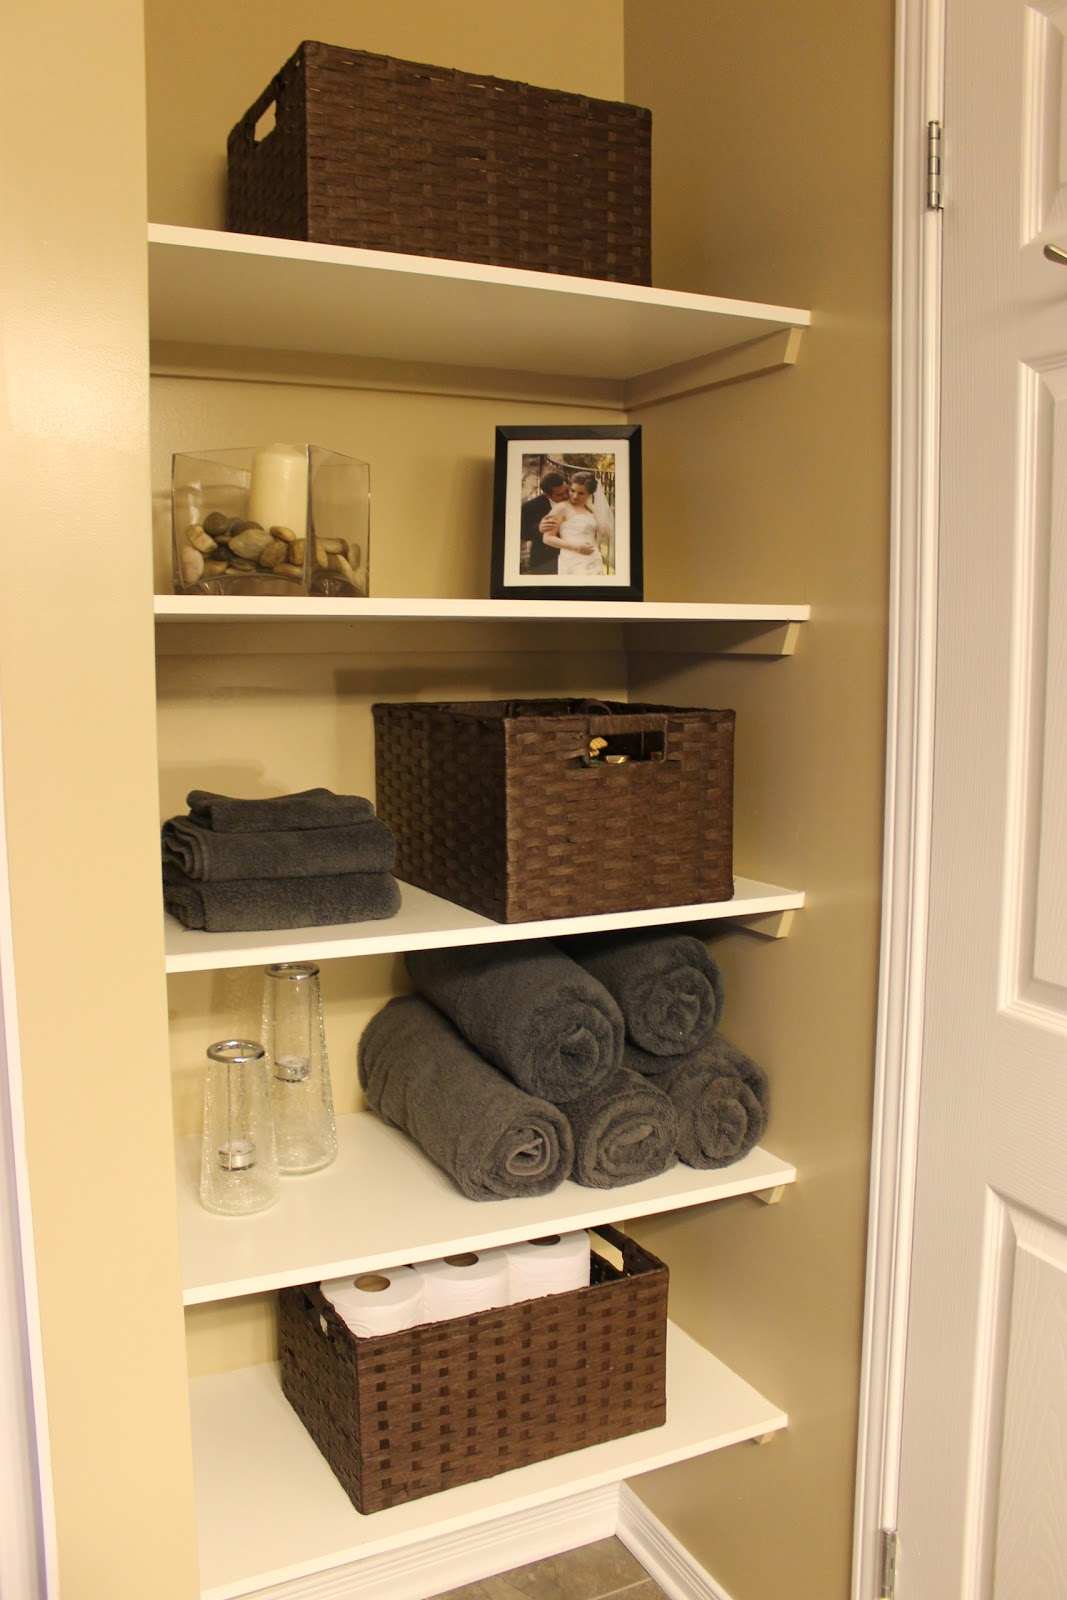 Km decor diy organizing open shelving in a bathroom for Bathroom decor and storage